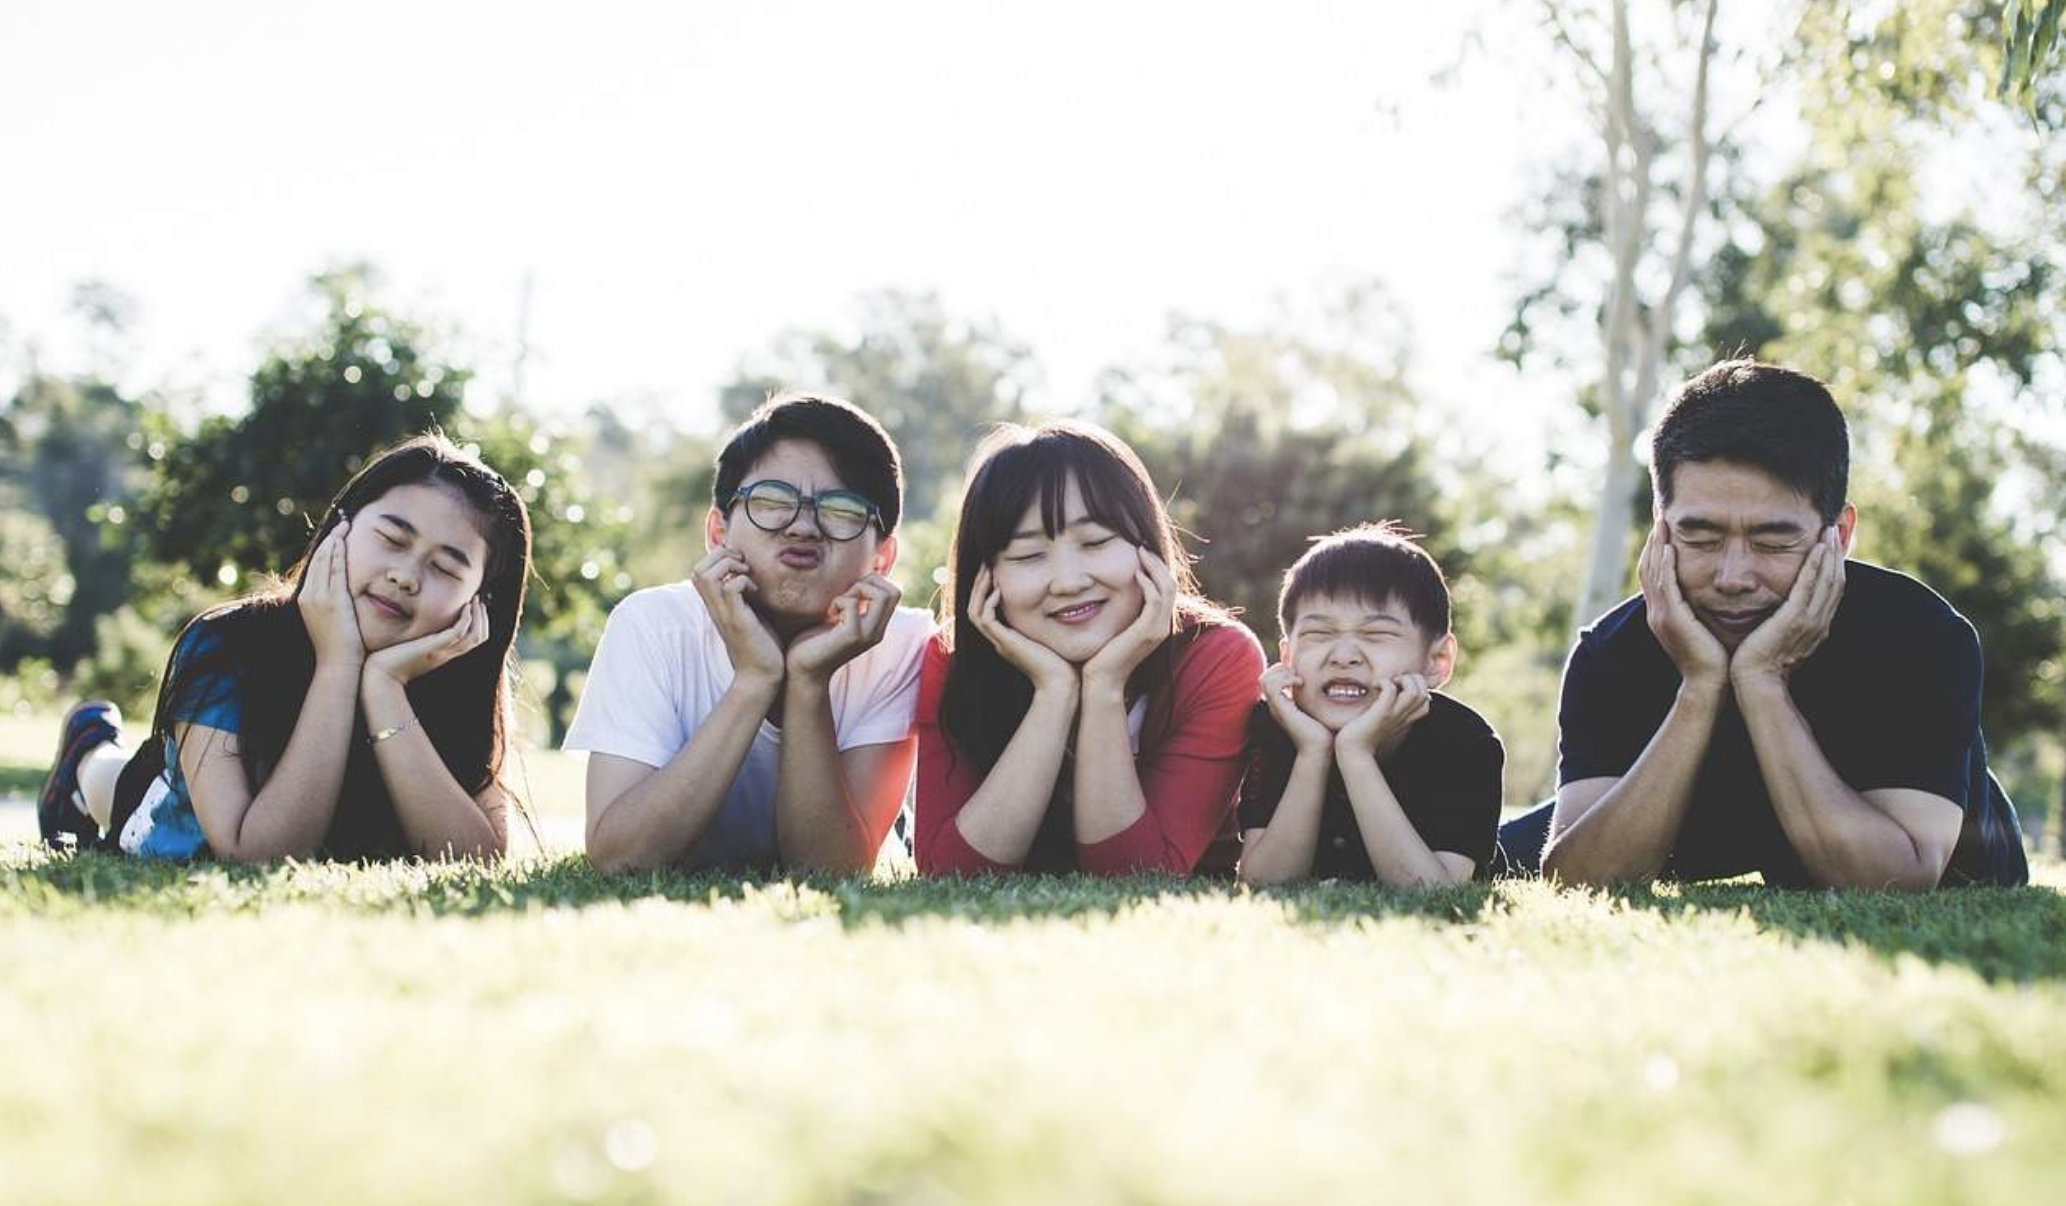 Adolescents on the Spectrum: What to Know & Expect for the Future